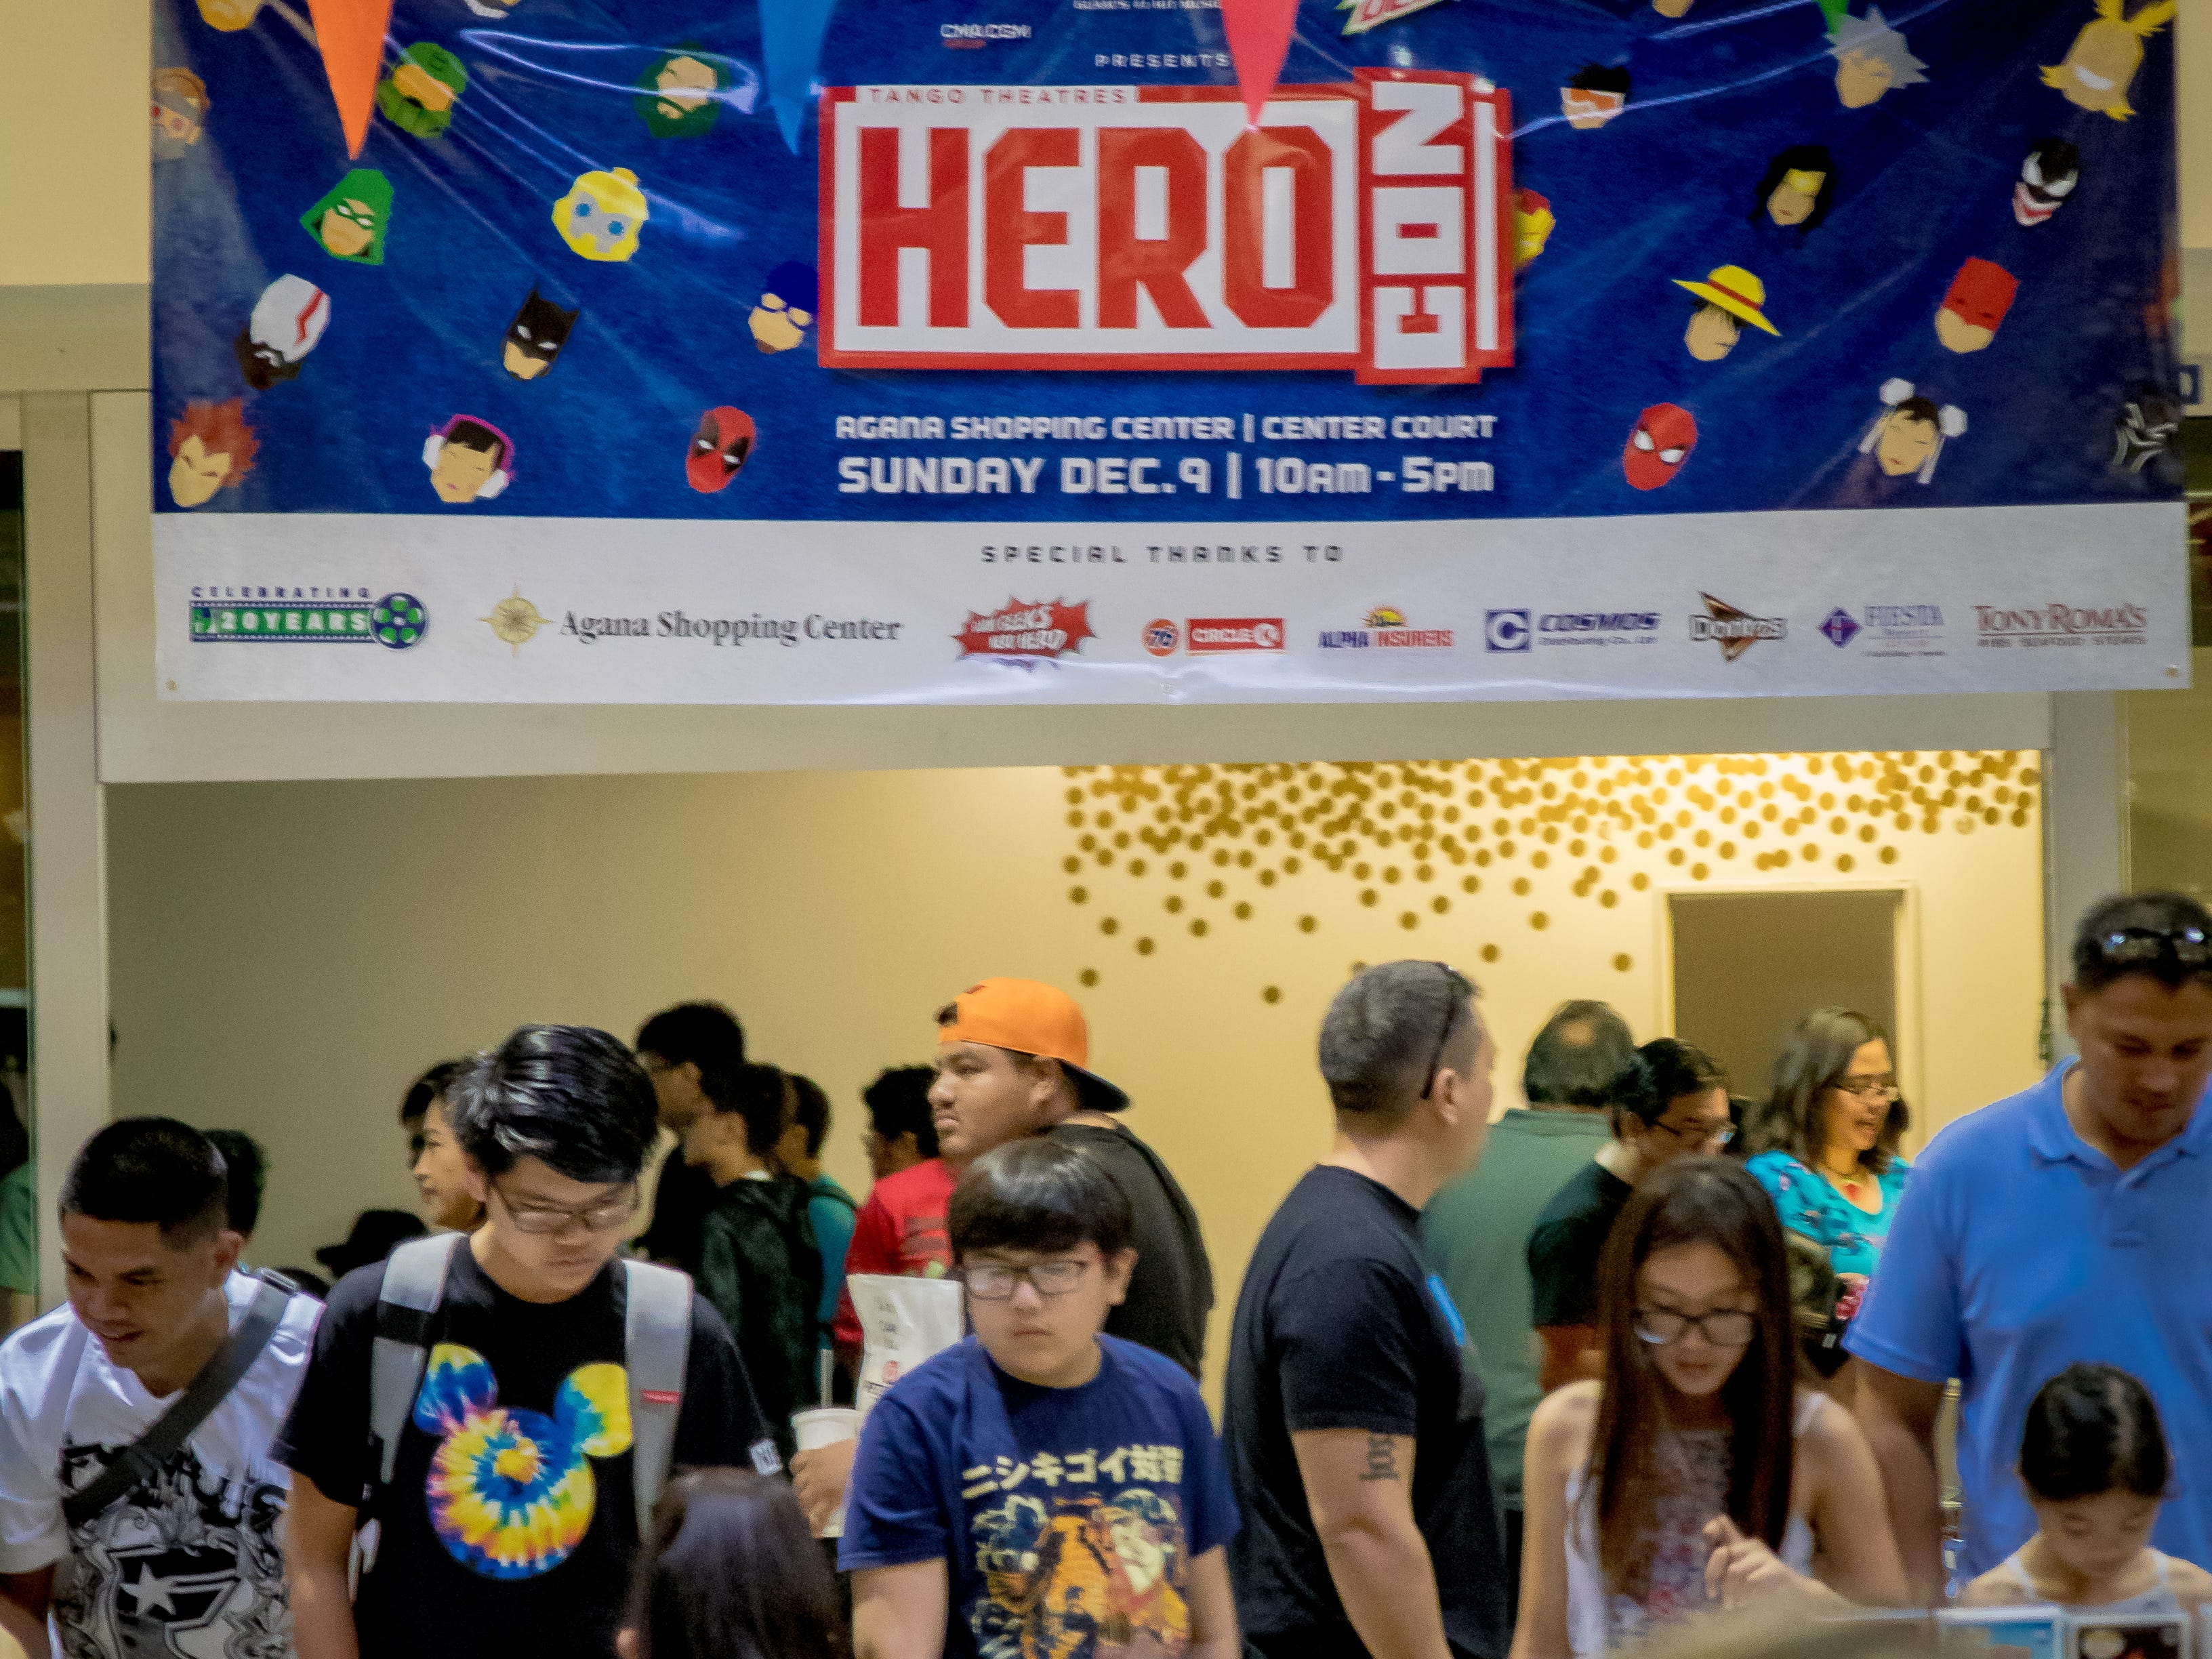 Mallgoers check out the various booths on display at the first Herocon held at Agana Shopping Center on Dec. 9.